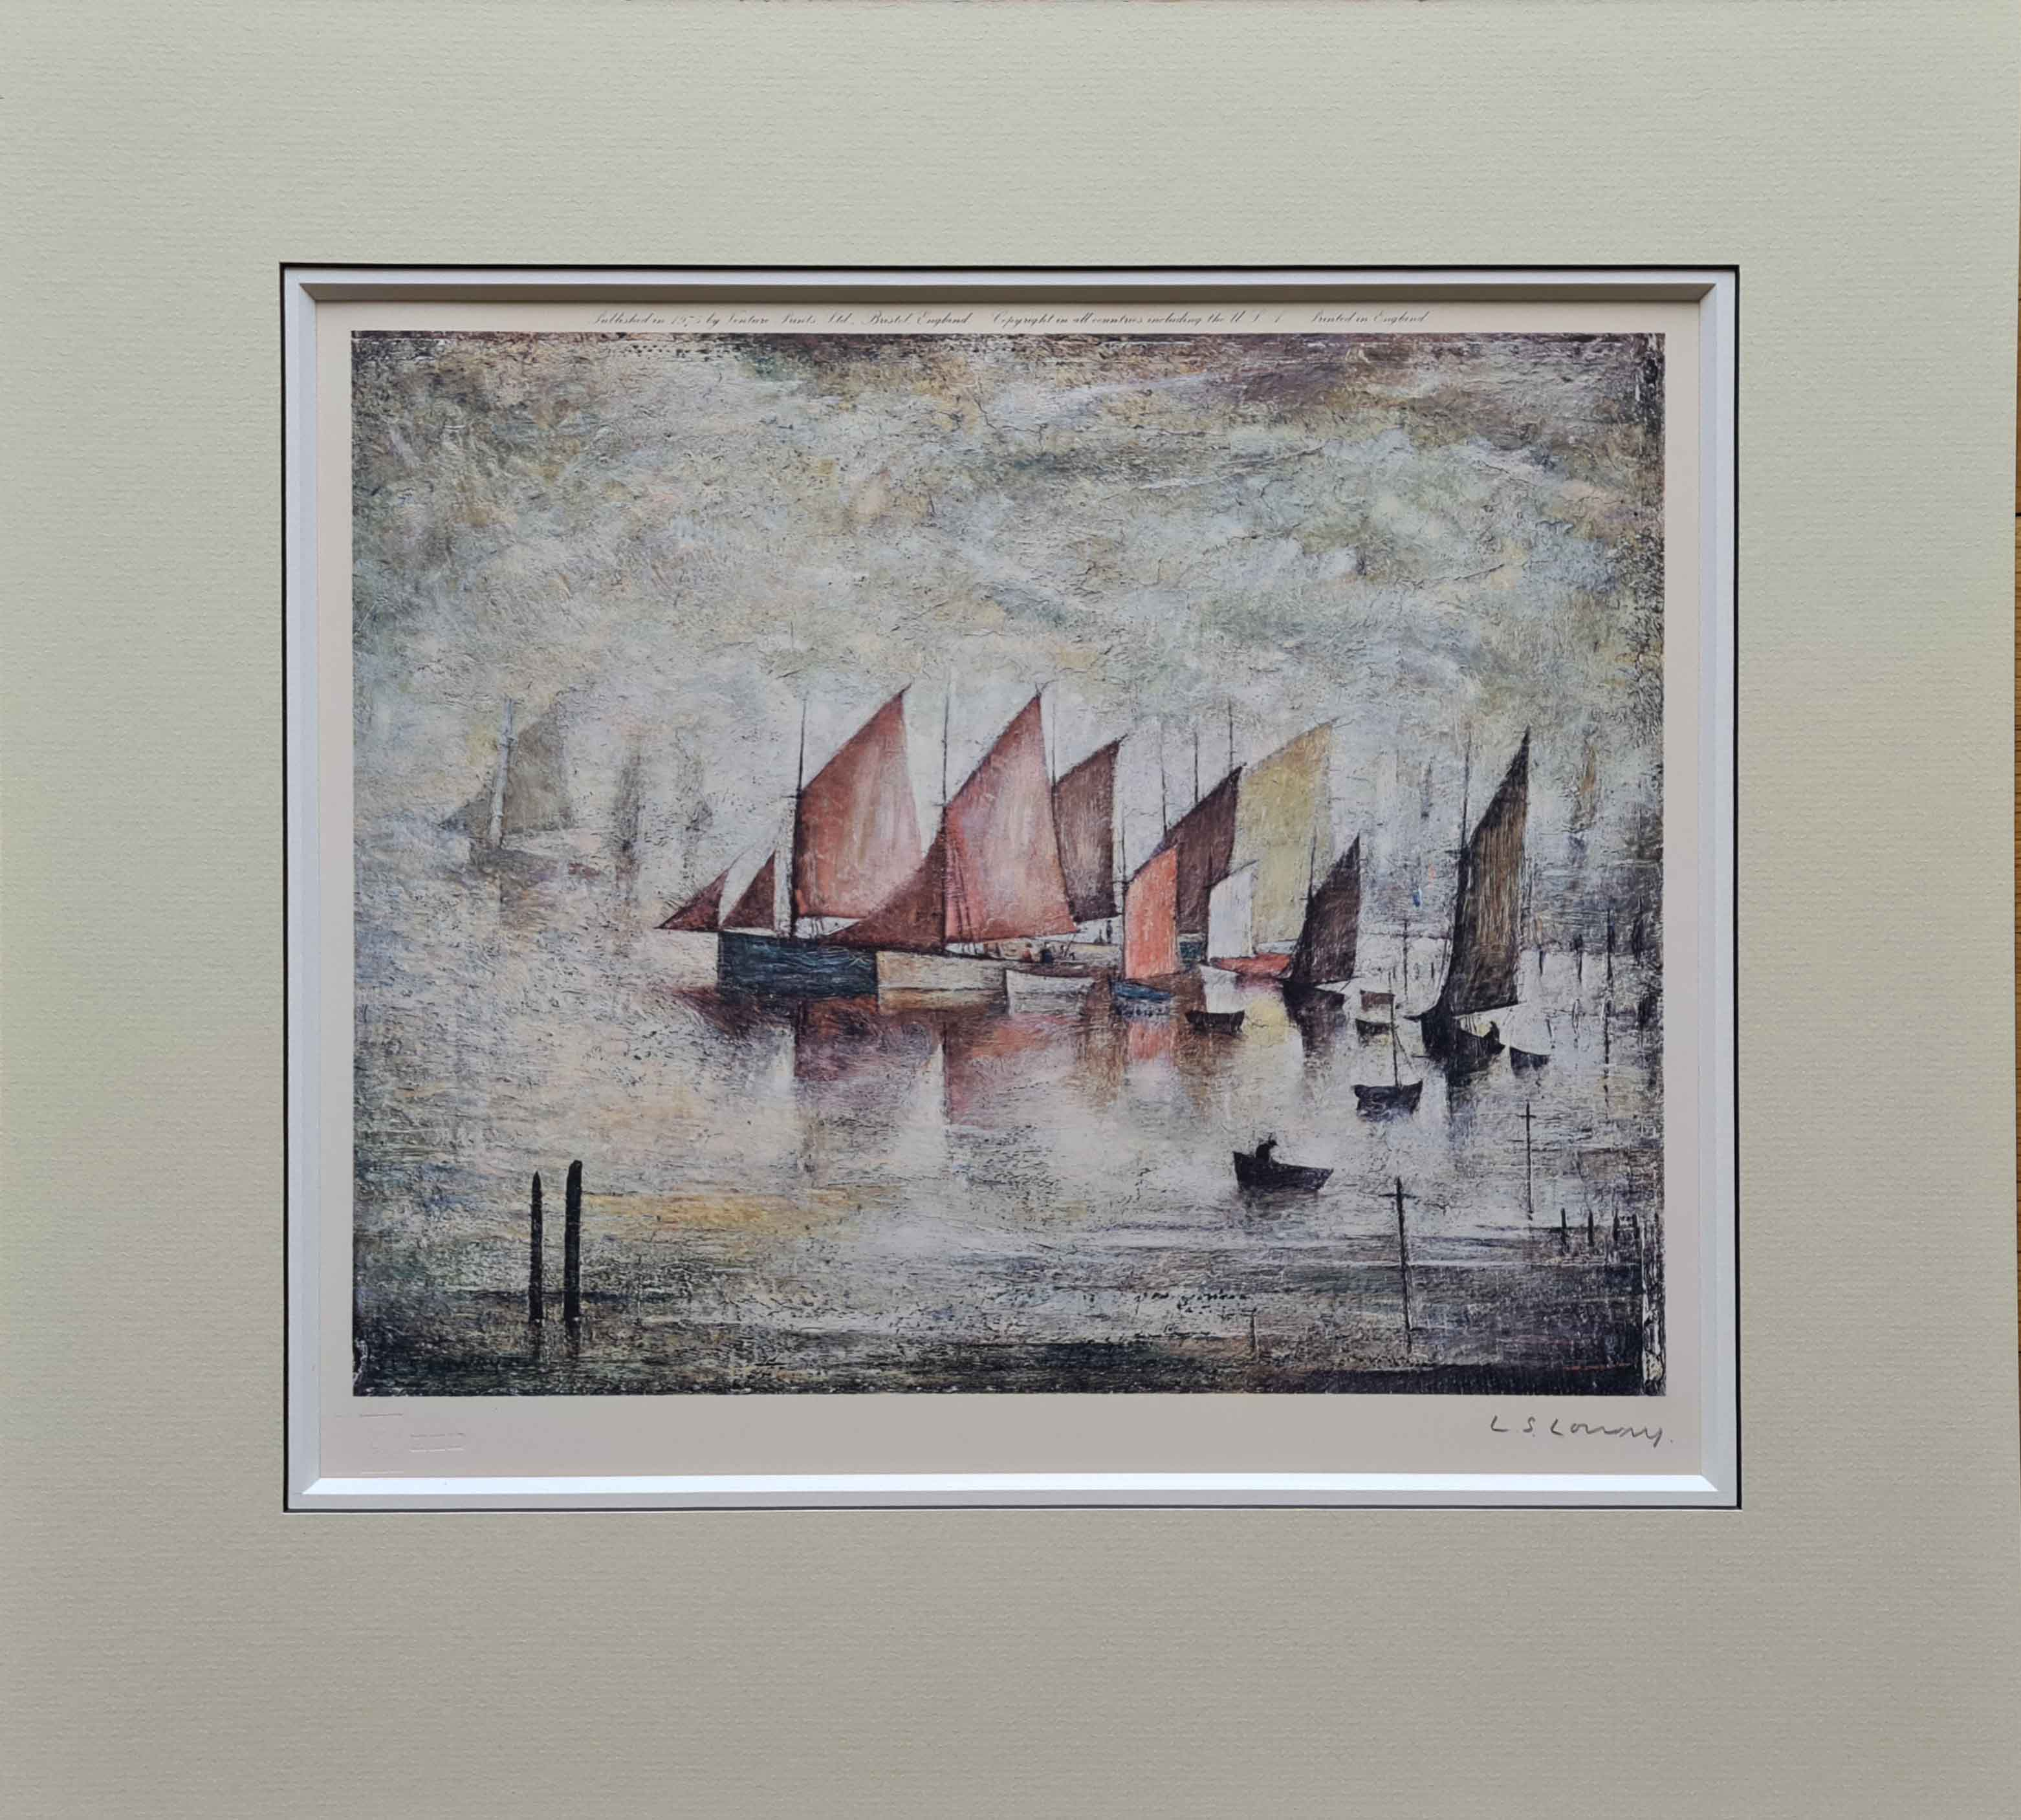 lowry, Sailing Boats, signed print lslowry